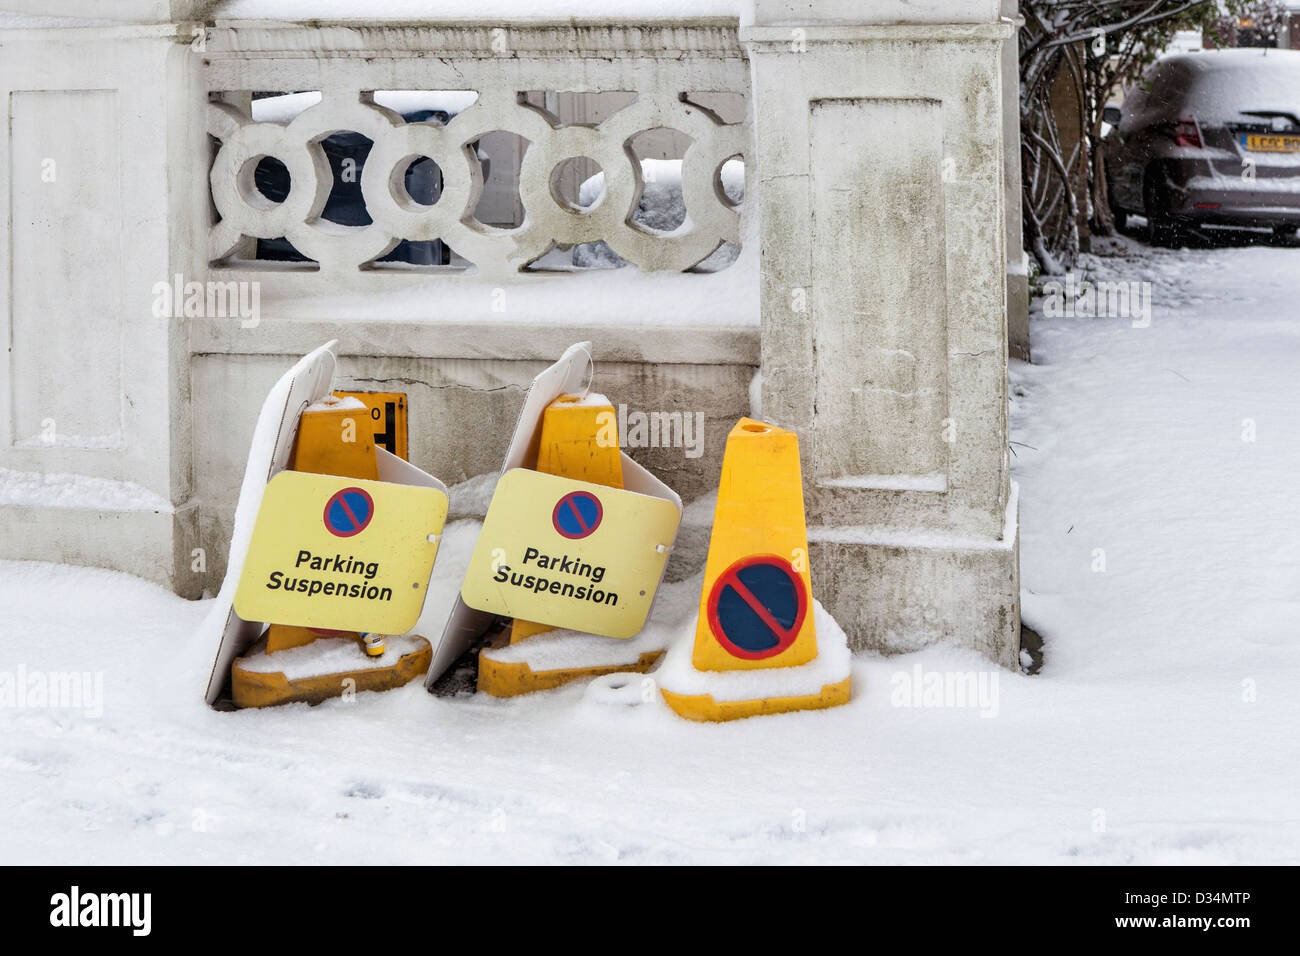 Parking suspension signs and no entry bollards in the snow in Winter - Richmond upon Thames, Surrey - Stock Image